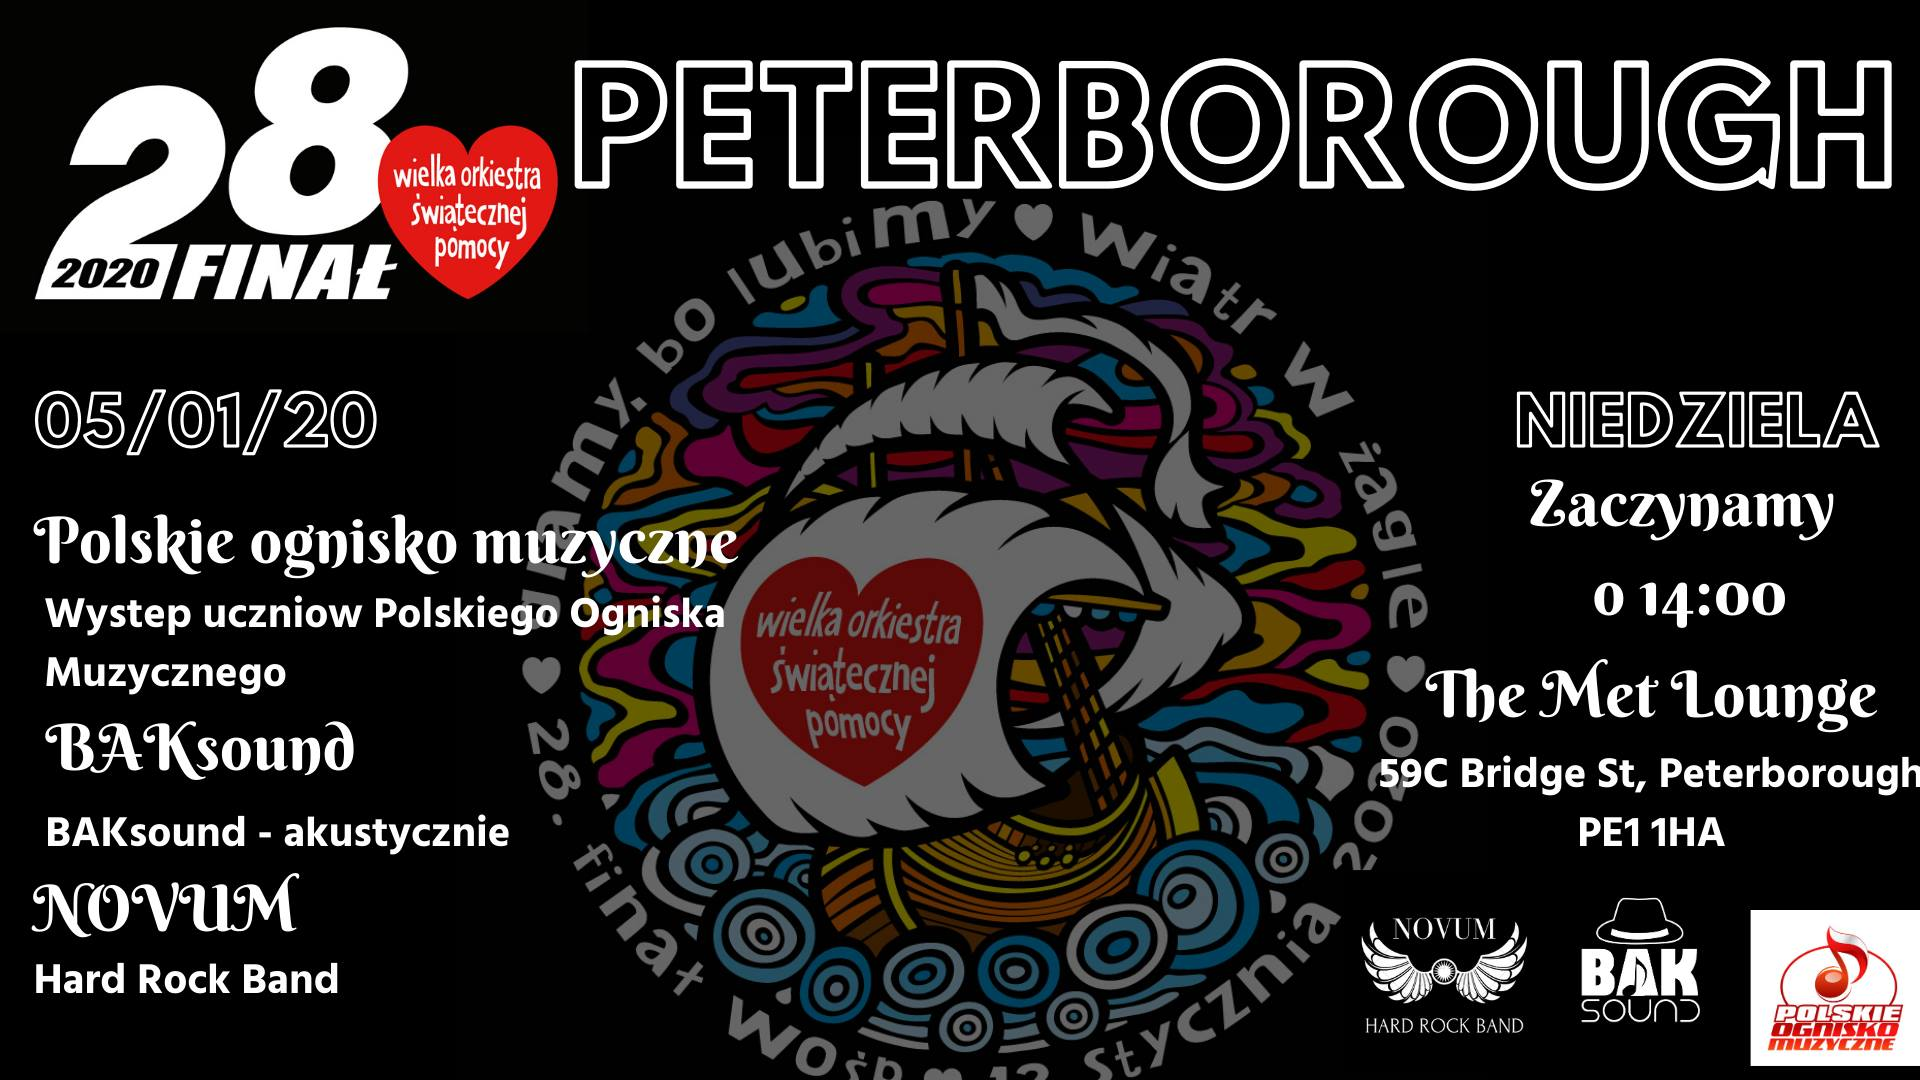 wosp 2020 peterborough 1 plakat